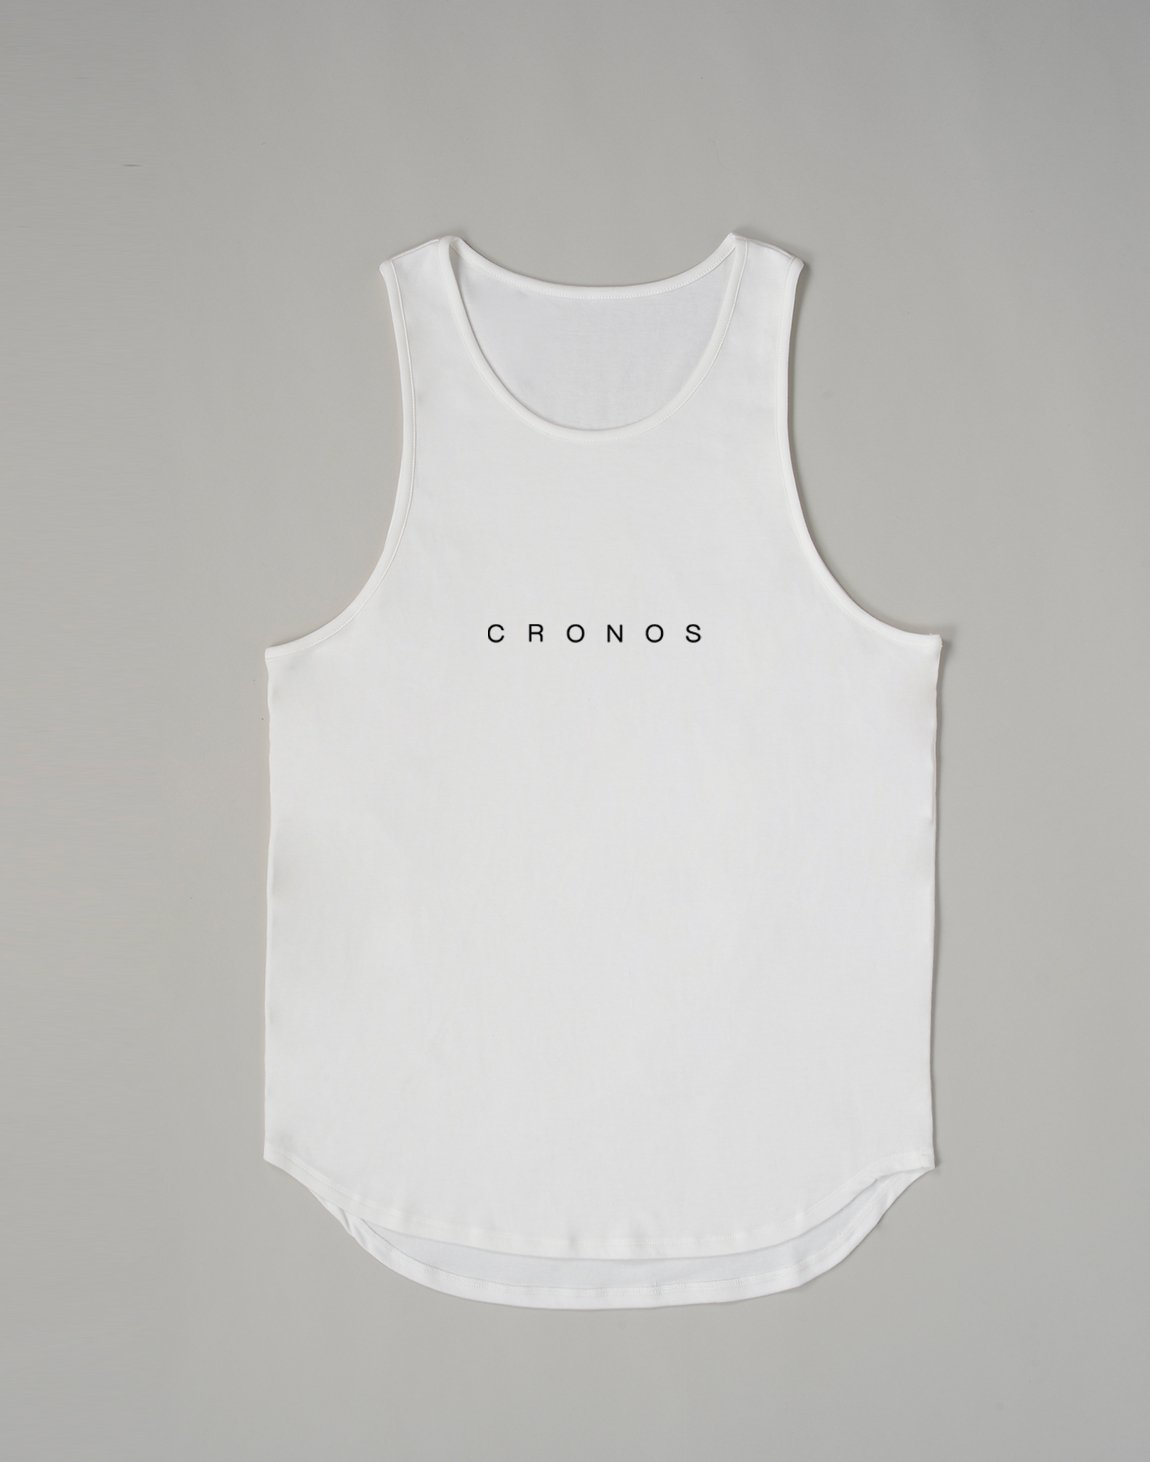 <img class='new_mark_img1' src='https://img.shop-pro.jp/img/new/icons1.gif' style='border:none;display:inline;margin:0px;padding:0px;width:auto;' />CRONOS NEW FONT LOGO TANK TOP【WHITE】